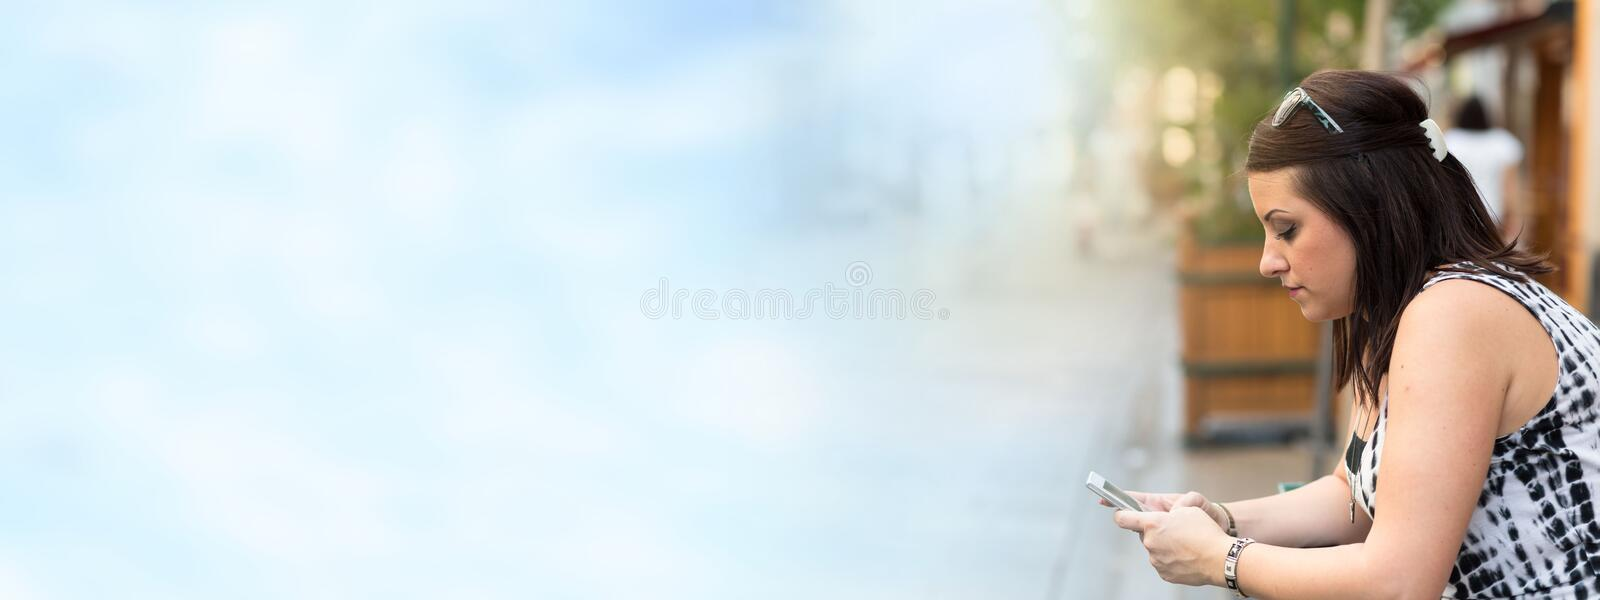 Pretty young woman using her mobile phone in the street royalty free stock photo